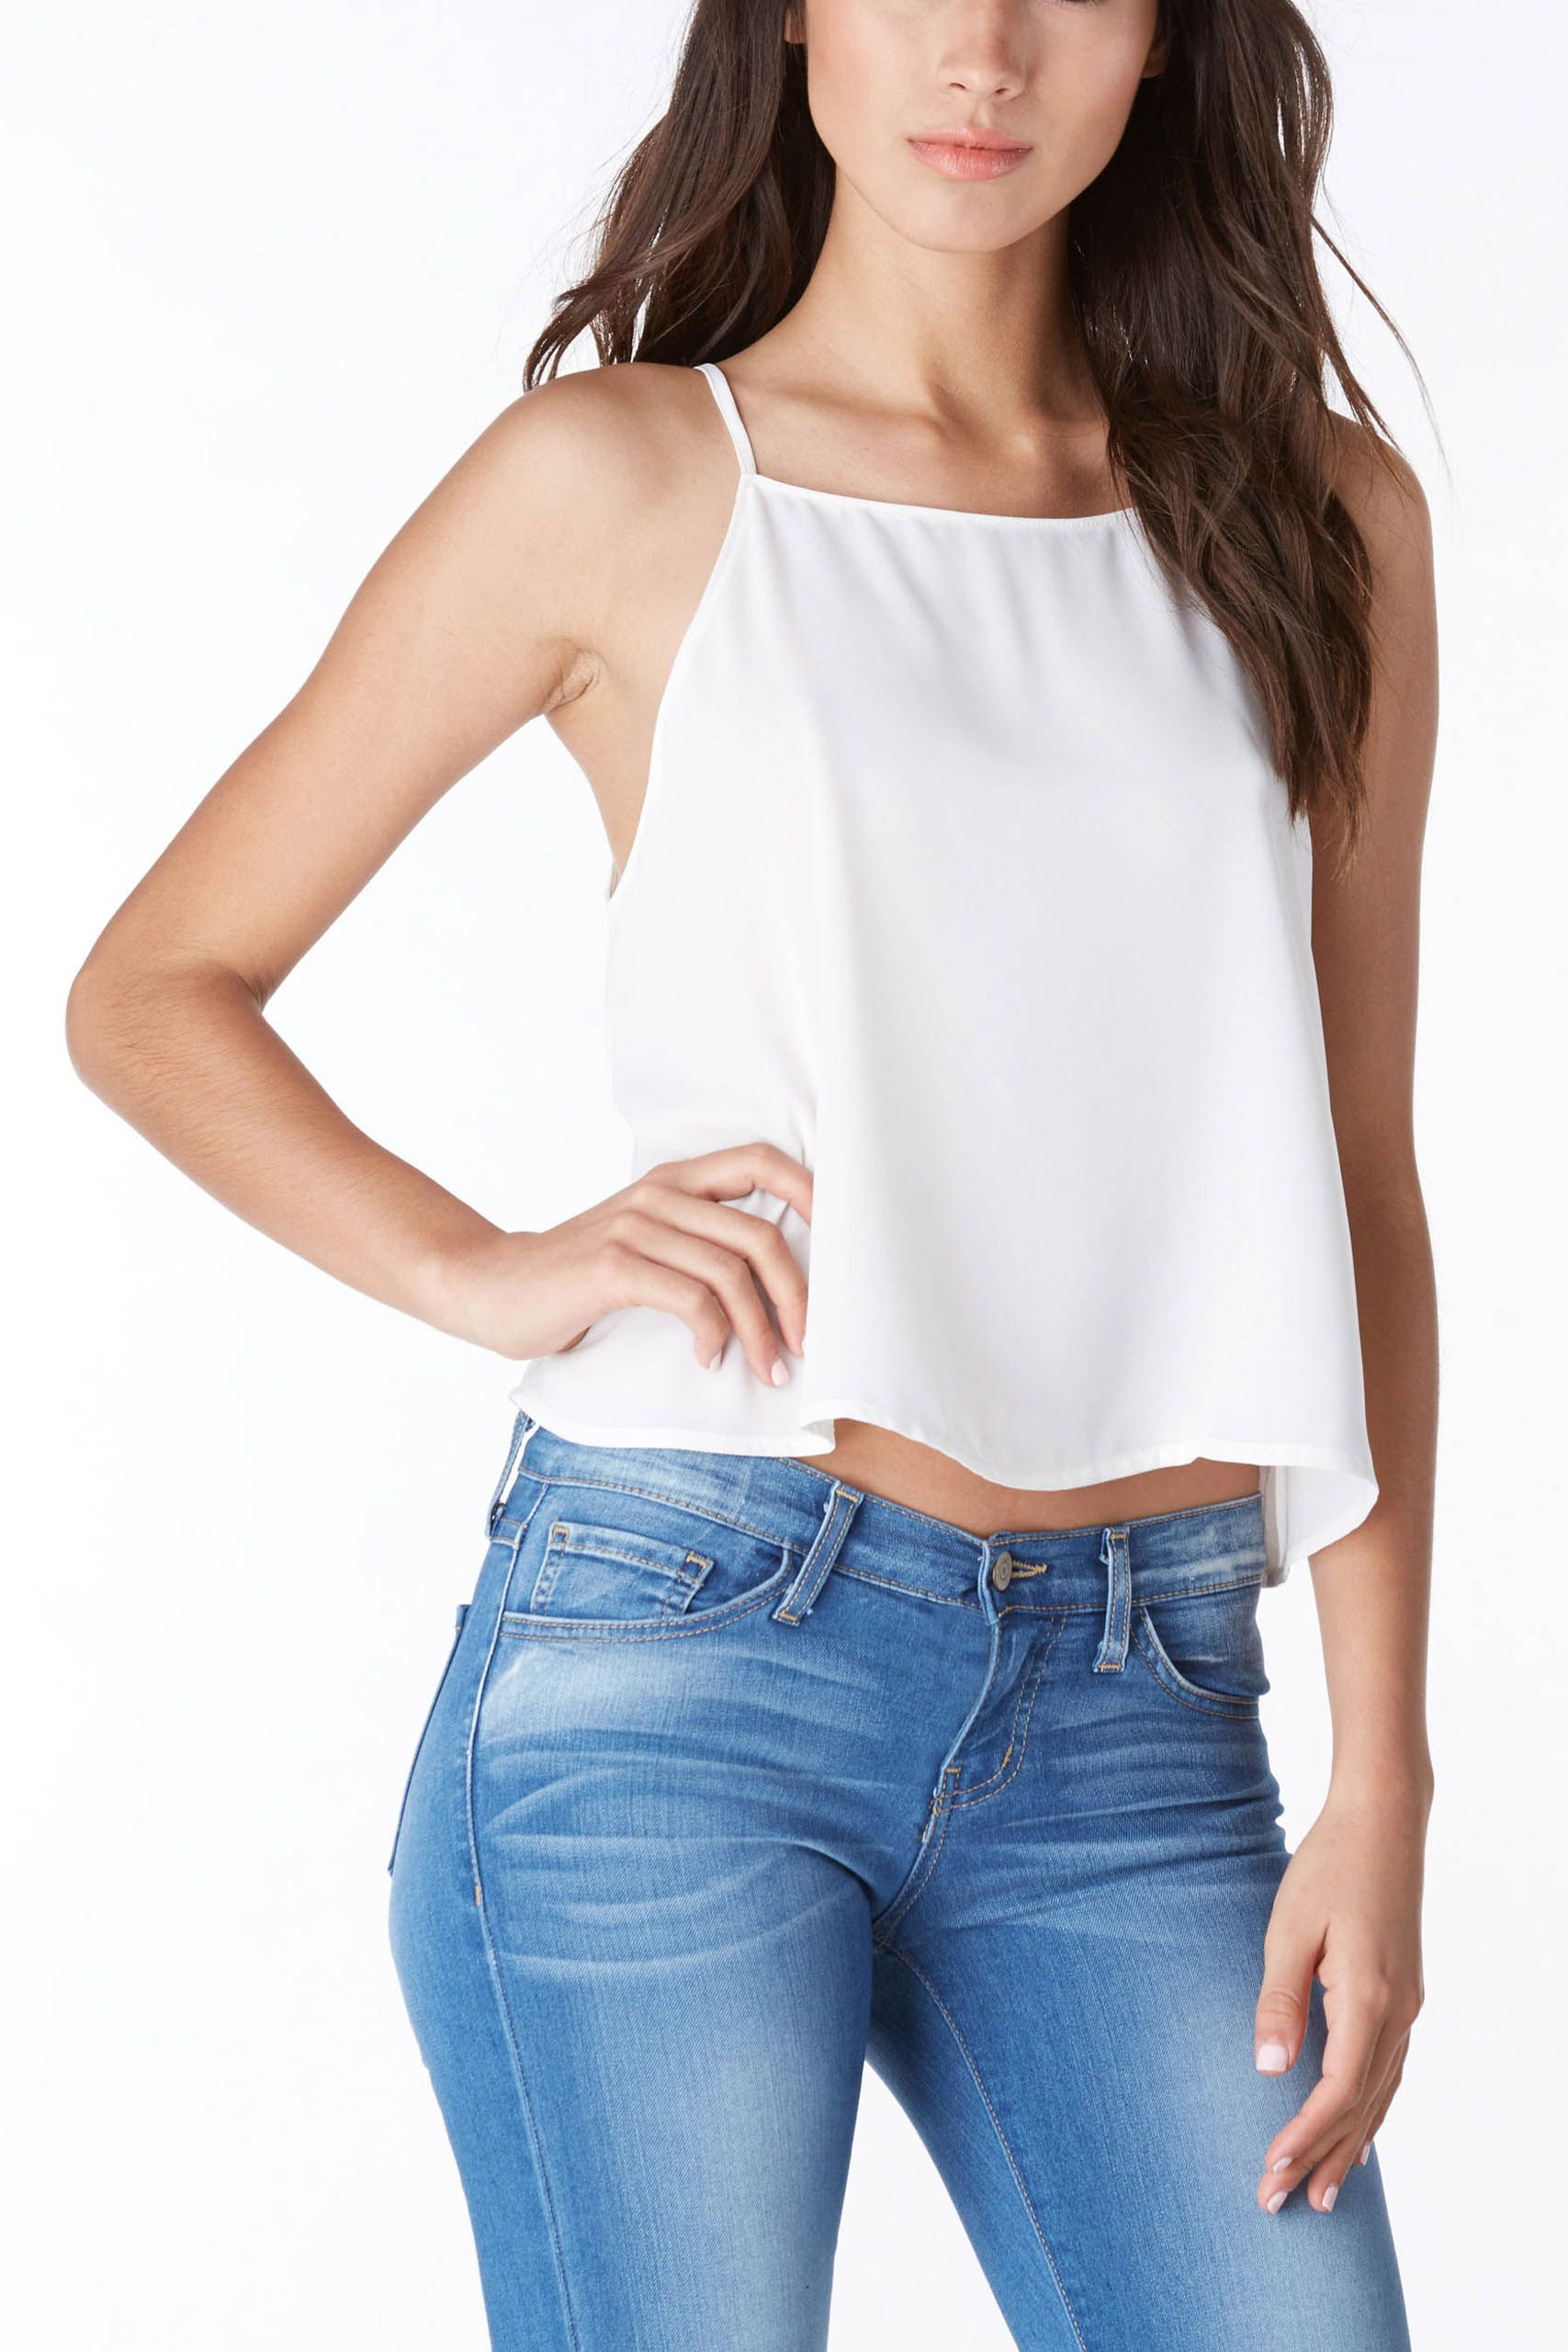 9dbdce8c942bef An easy-to-wear cropped high-neck line, spaghetti strap tank top! Pair with  cute denim and accessorize with danity jewels #trendy